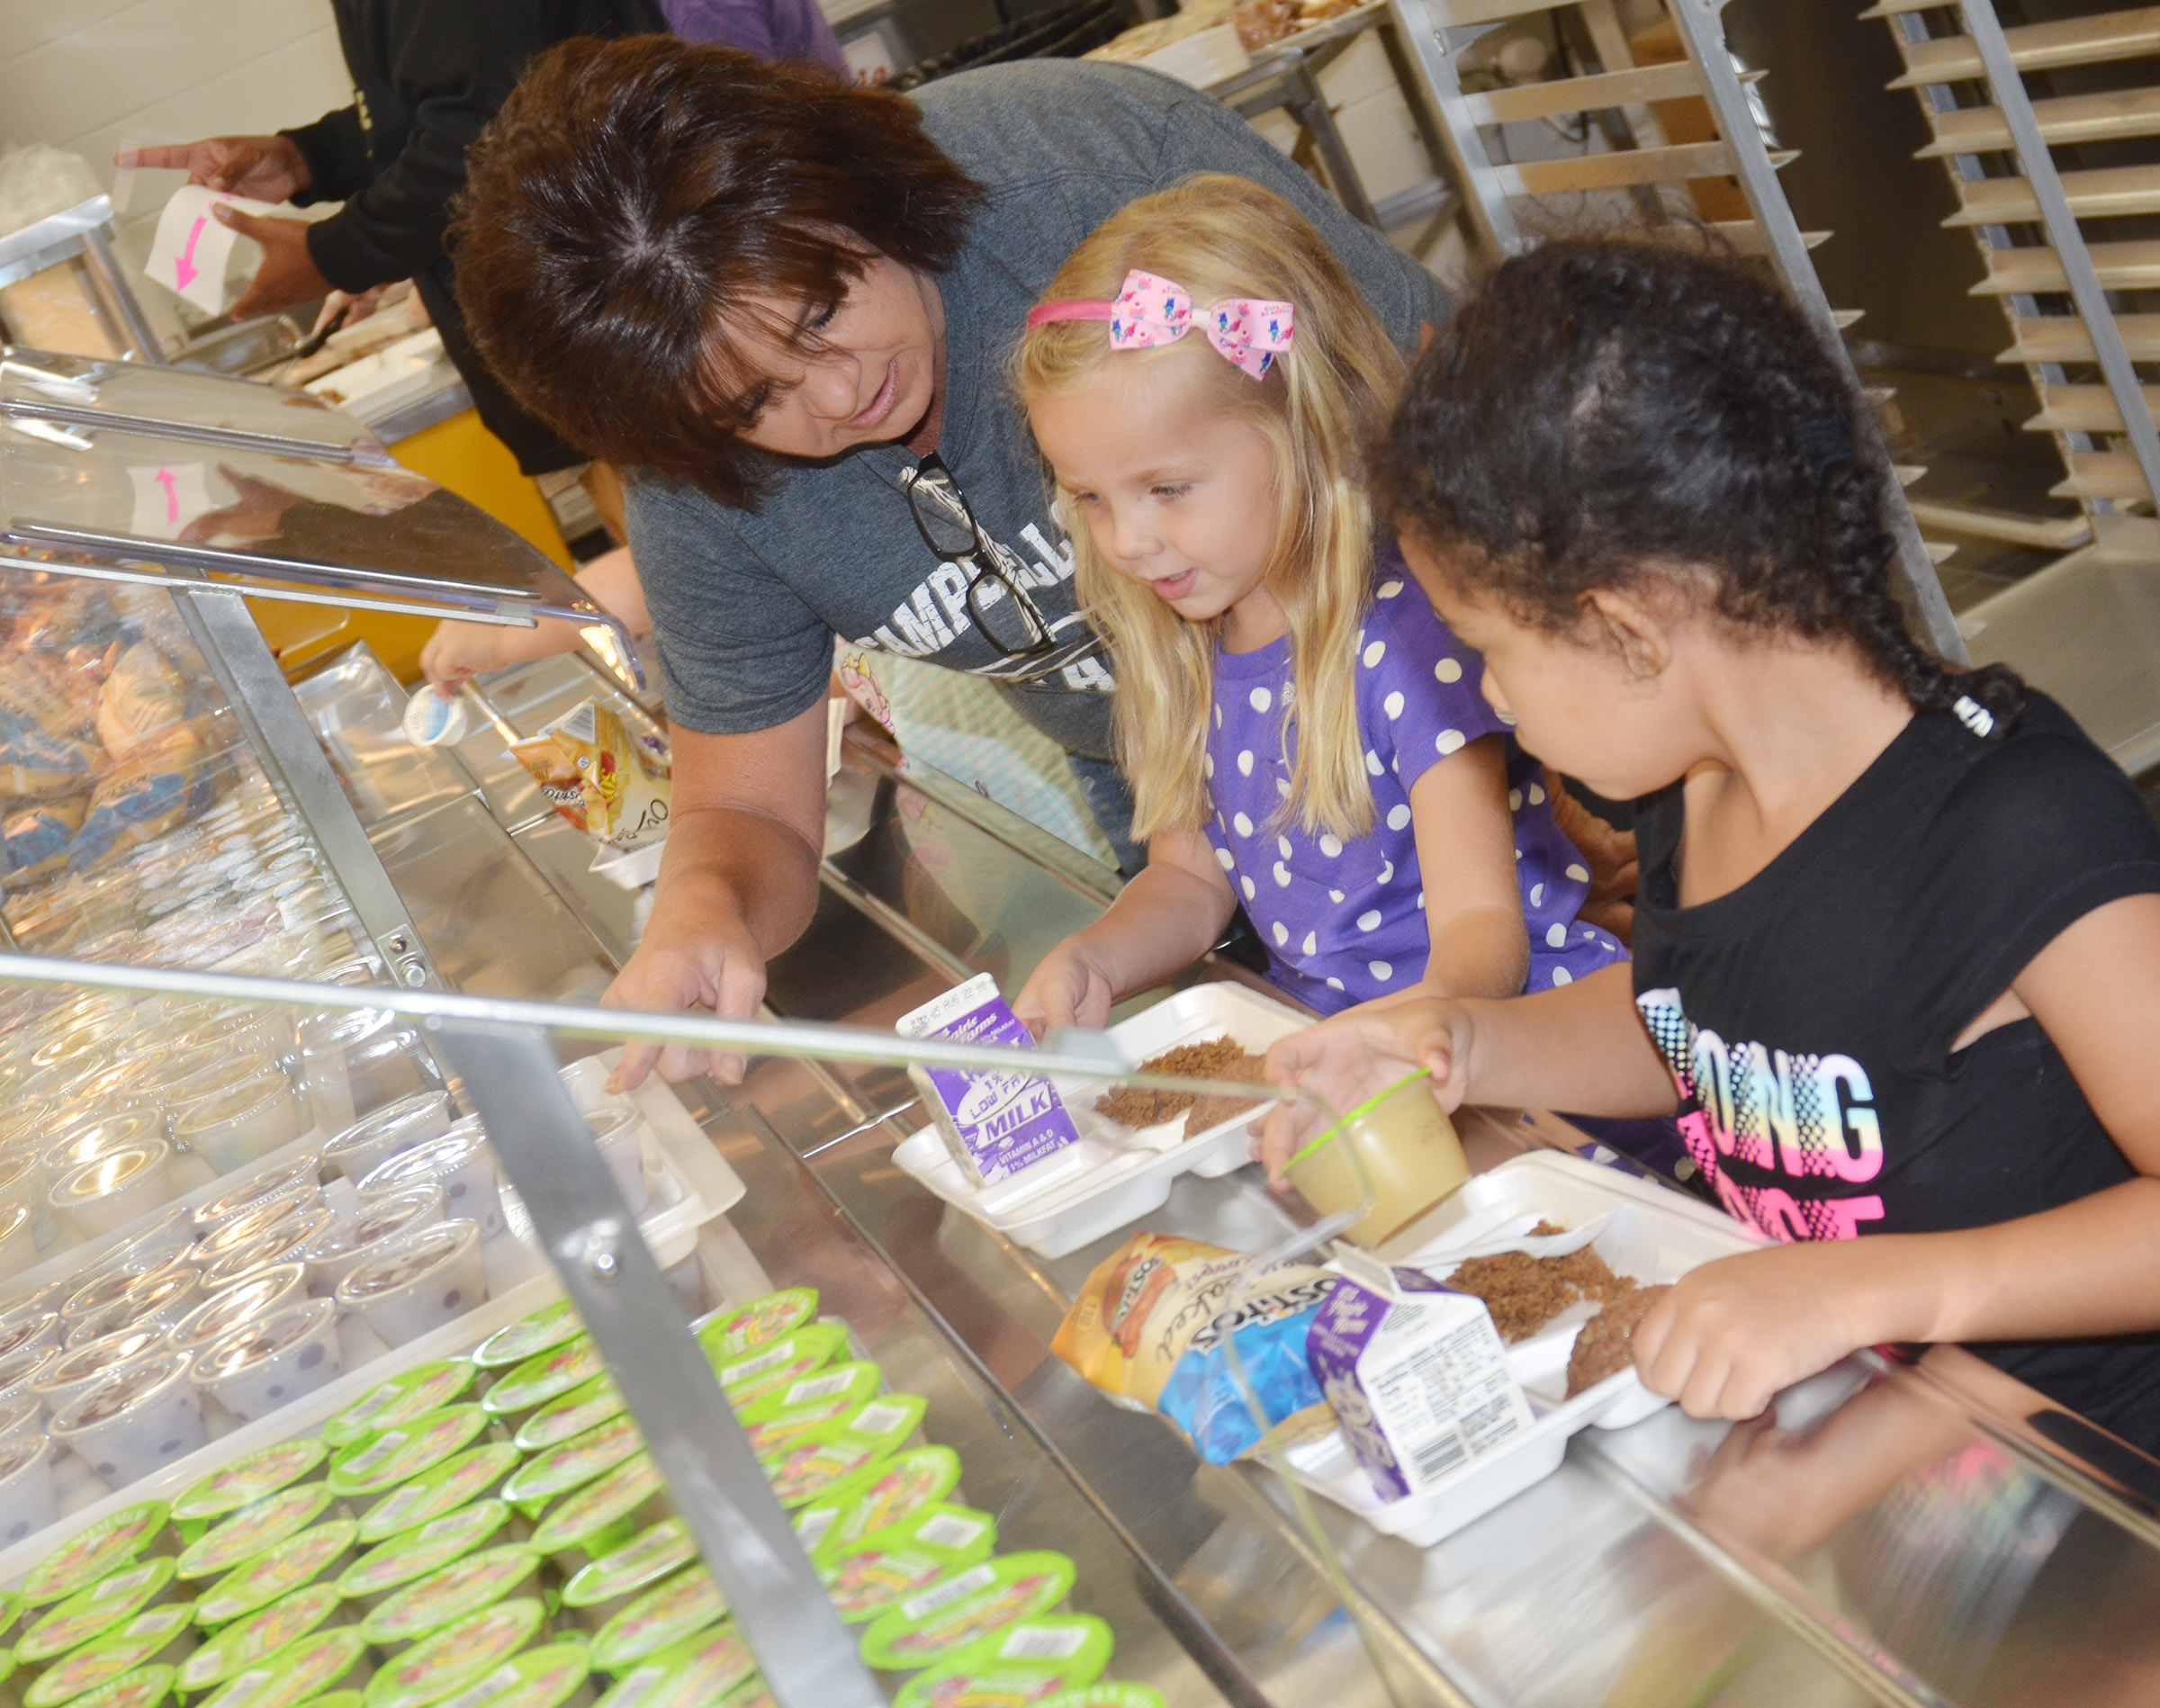 CES cafeteria worker Shelly Wilson helps kindergarteners Trinidy Gribbins, center, and Rylee Karr select what they want to eat.